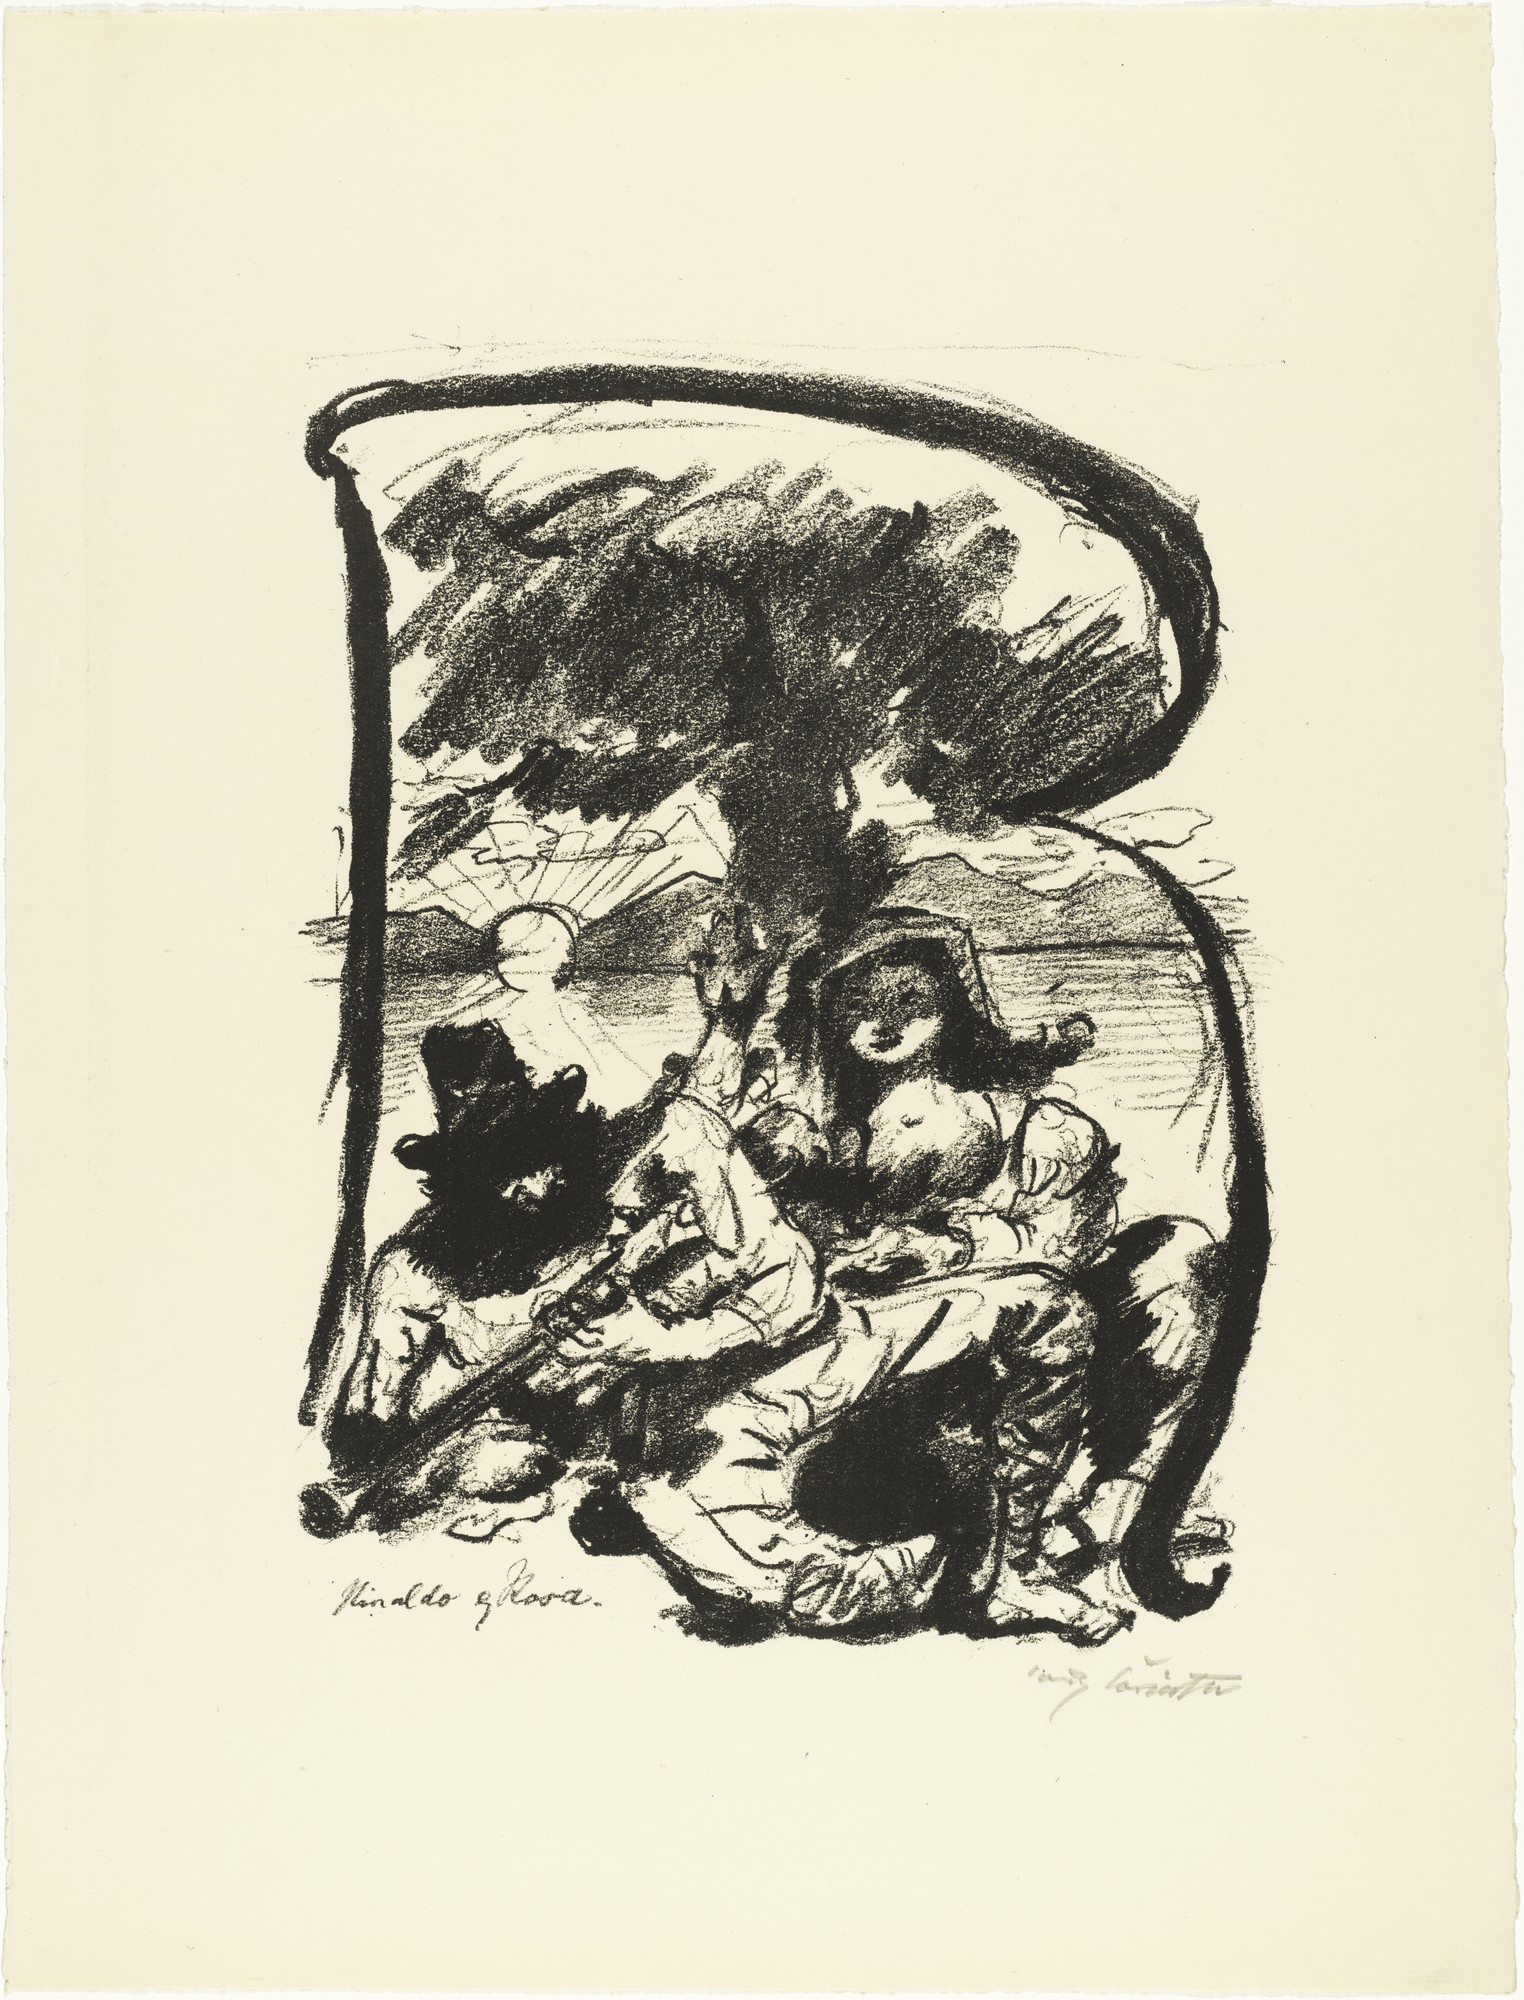 Lovis Corinth. Letter R (Buchstabe R) from the illustrated book in portfolio form The ABCs (Das ABC). (1916, published 1917)